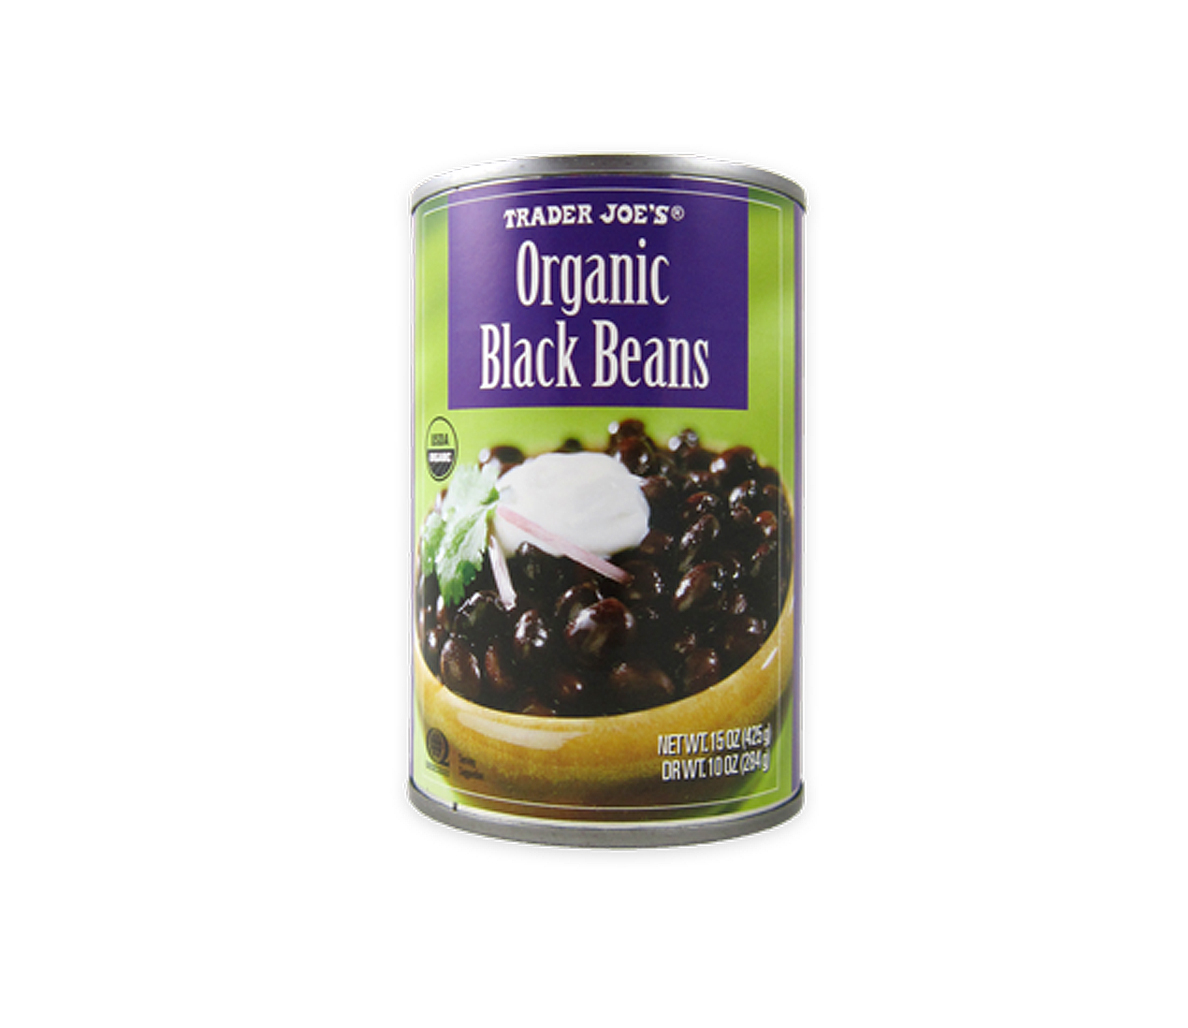 Organic Dog Food In Bpa Free Cans Food